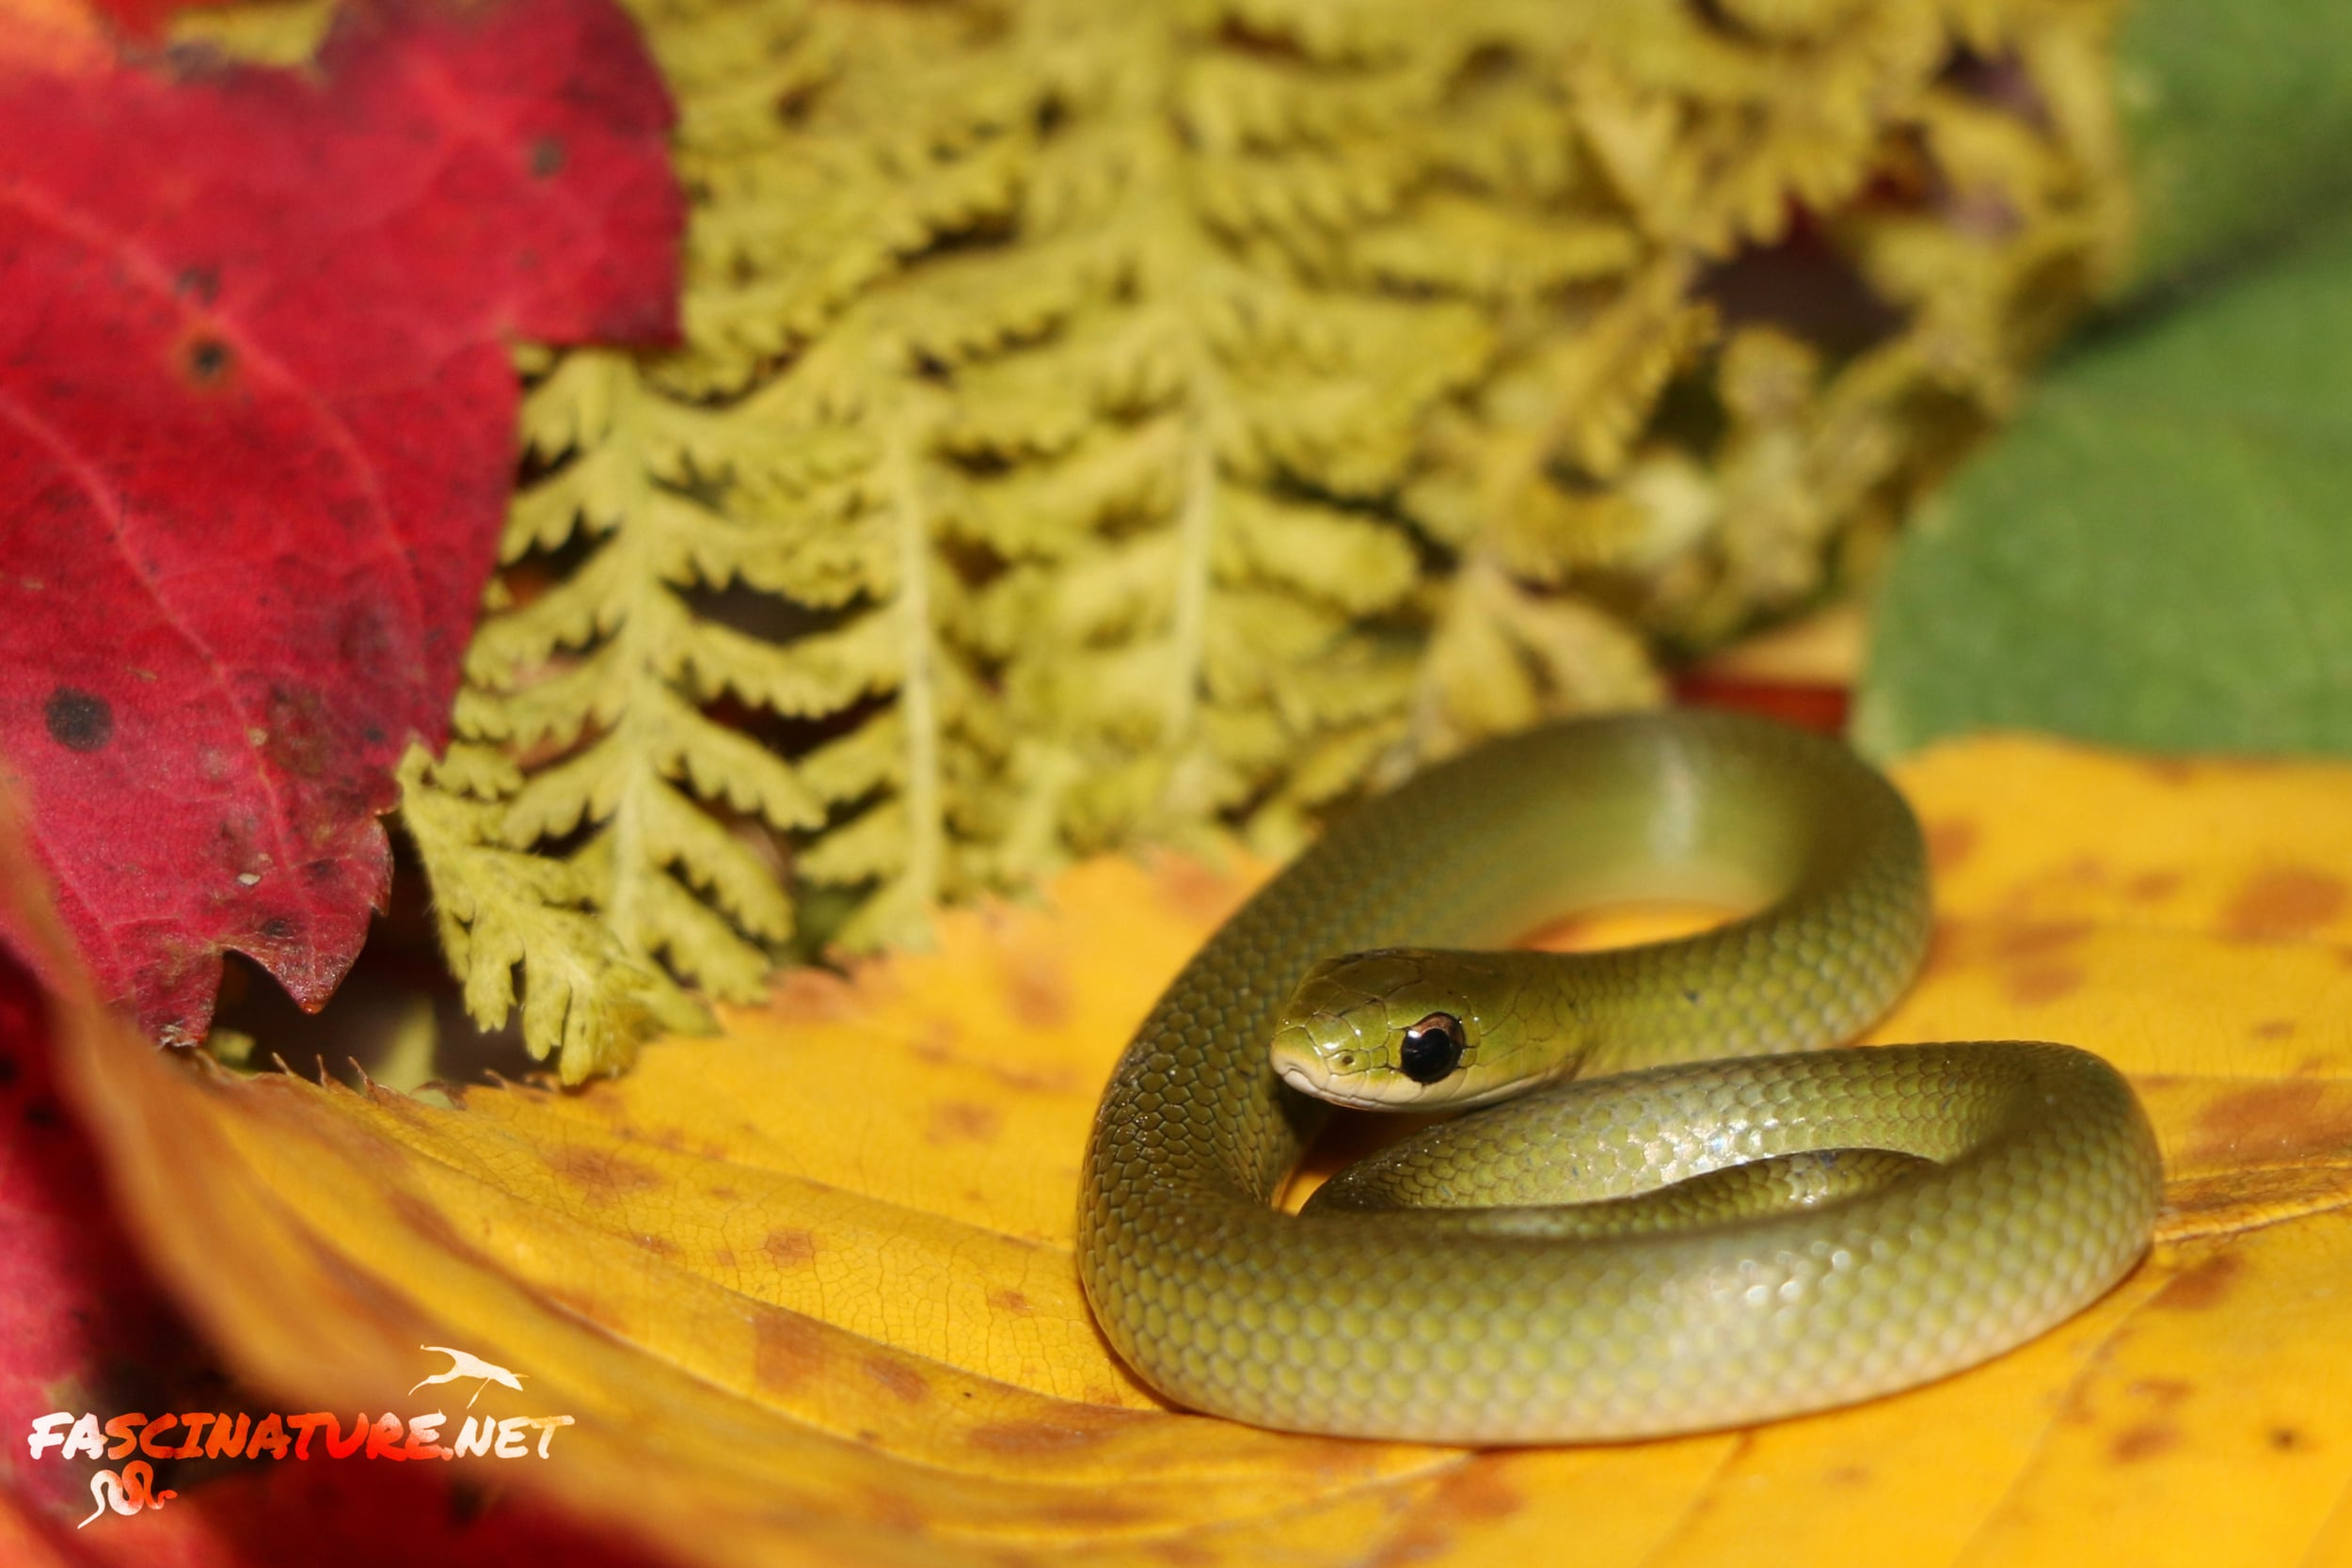 Smooth Greensnake - This was a hatchling I found on a 50-degree day in late October. It was a warm Autumn.